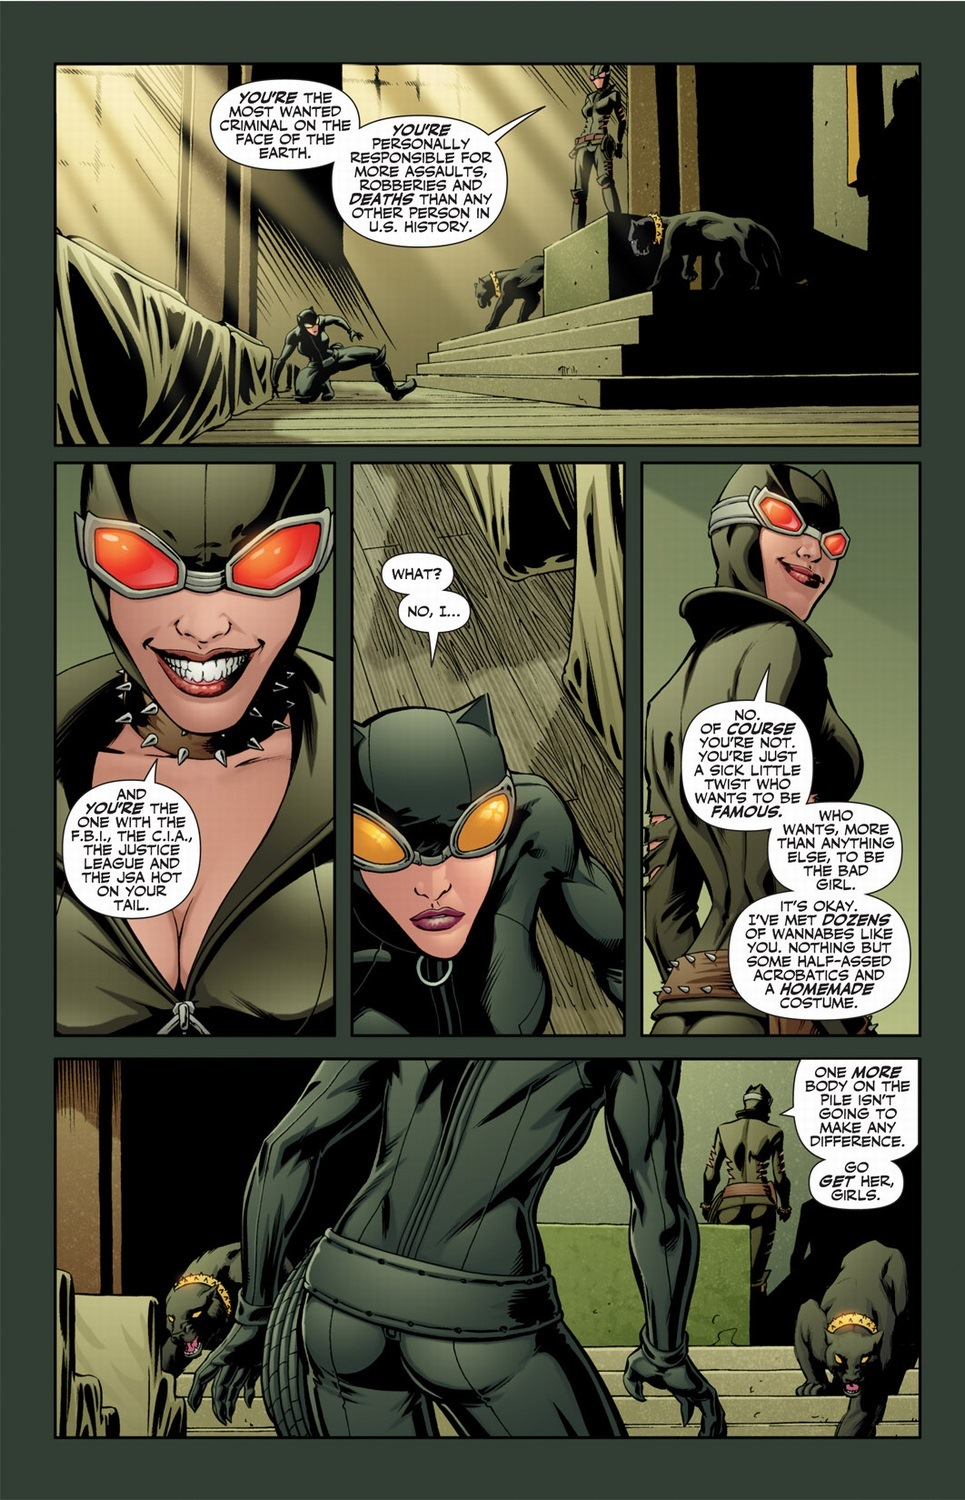 This Catwoman canu0027t afford to repair her costume yet can afford to feed two grown panthers? Plus u2014 while totally cool u2014 a clawed up costumeu0027s impractical.  sc 1 st  Arousing Grammar & Catwoman with superpowers Pt. 1 | Arousing Grammar